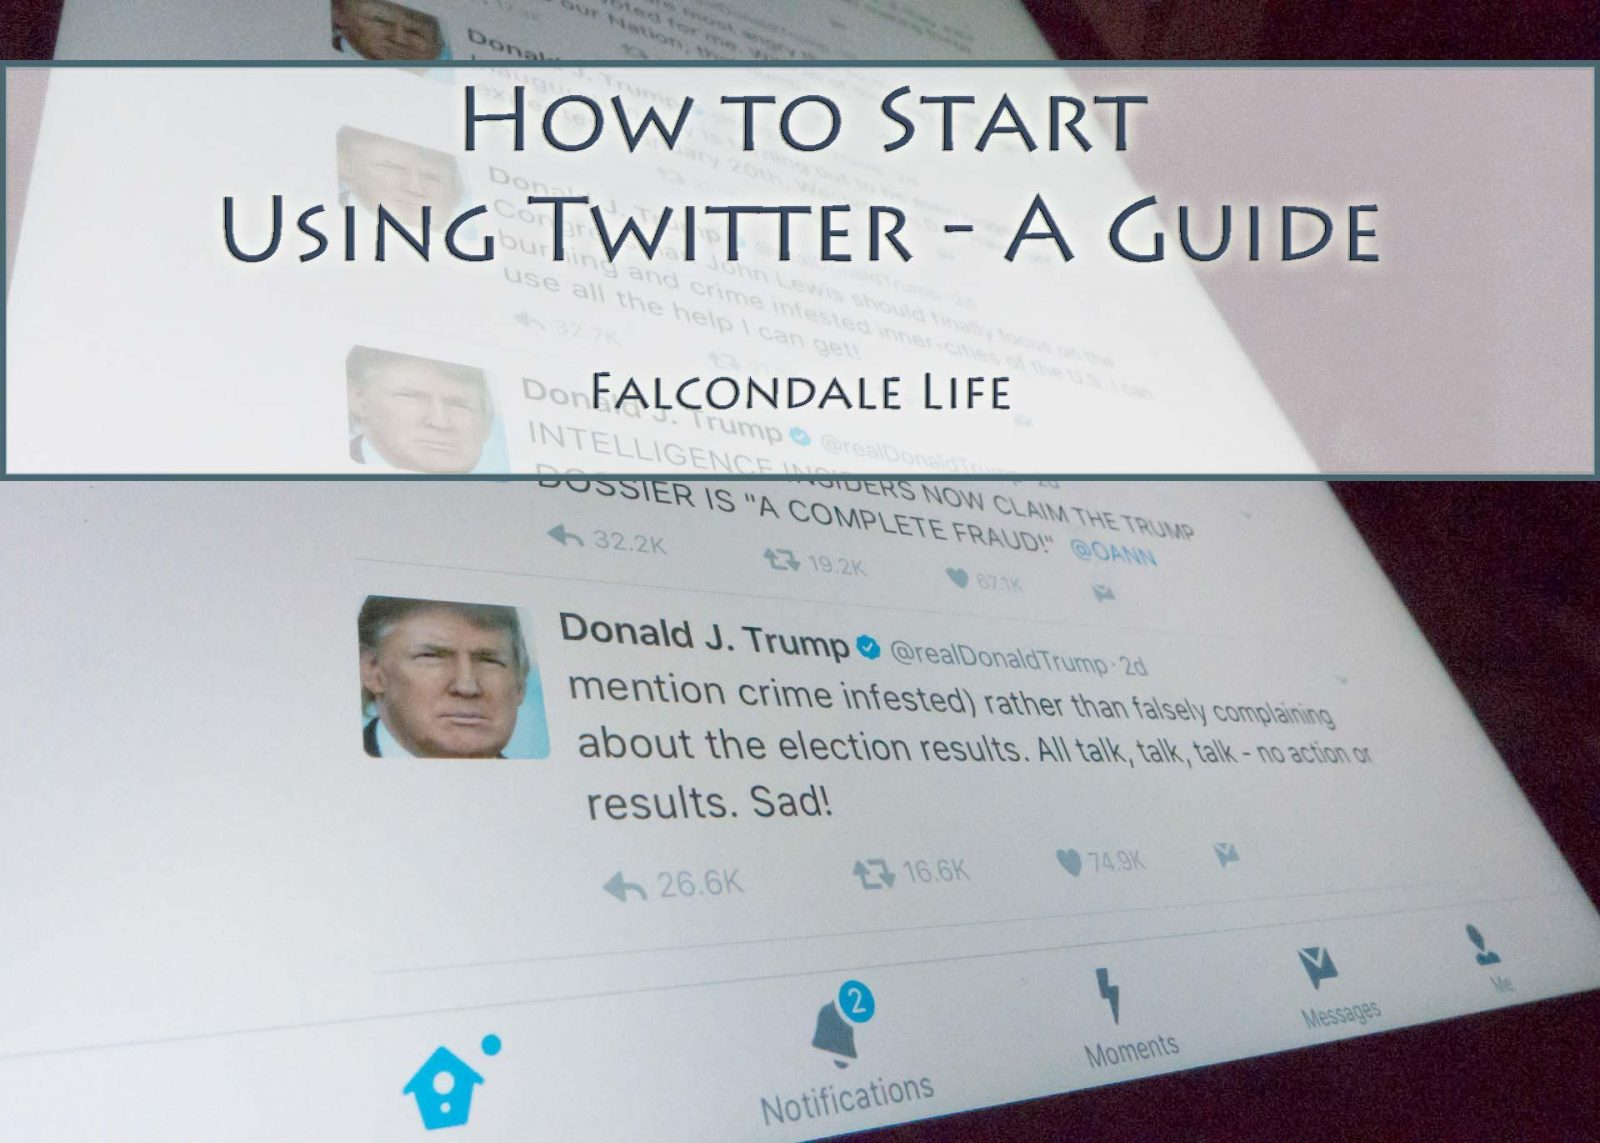 How to Start Using Twitter - A Guide on Falcondale Life blog